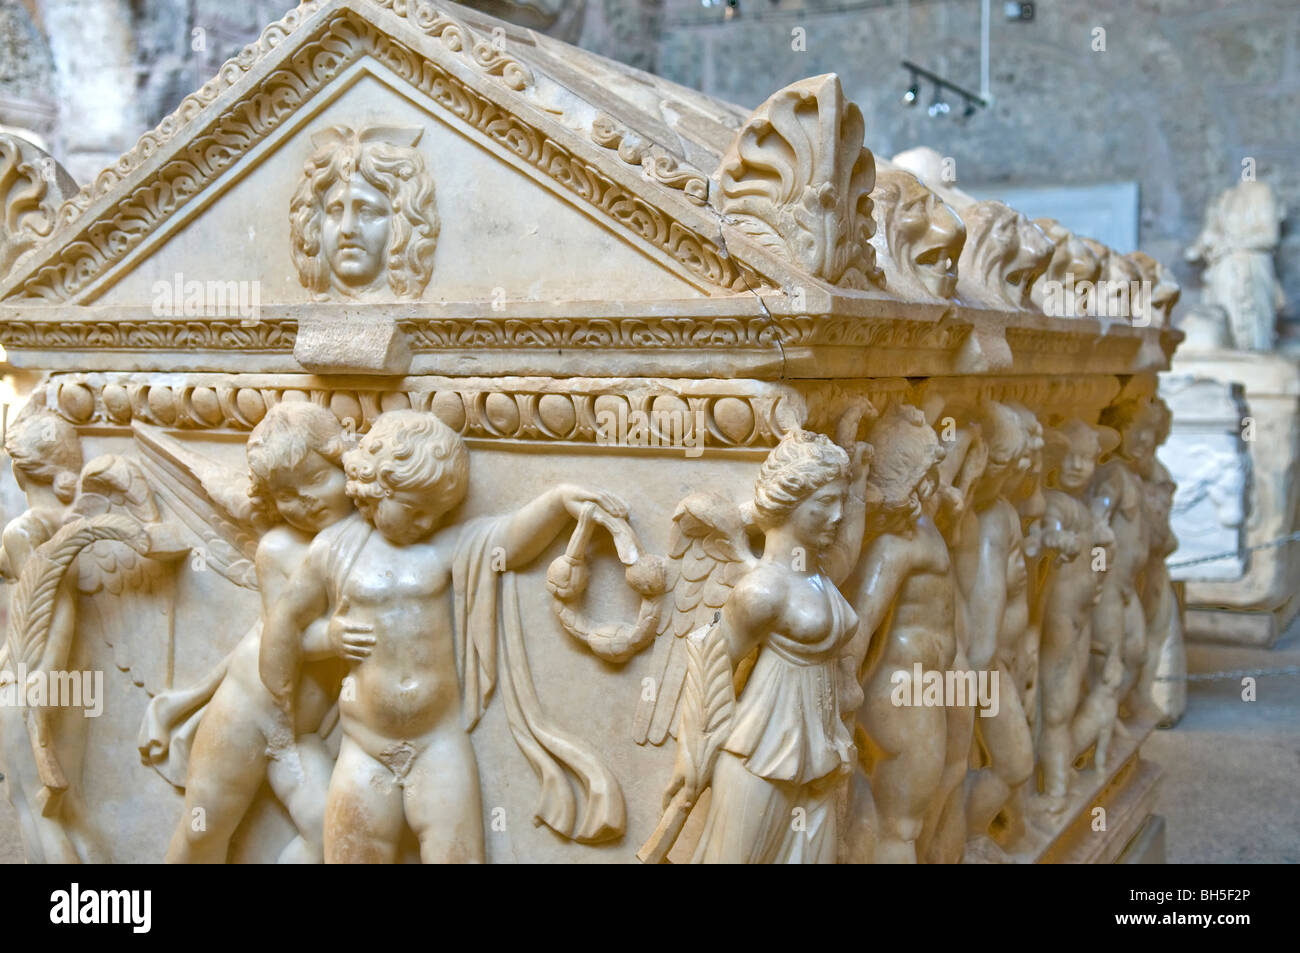 Sarcophagus with Eros relief, Side Museum, Turkey. - Stock Image